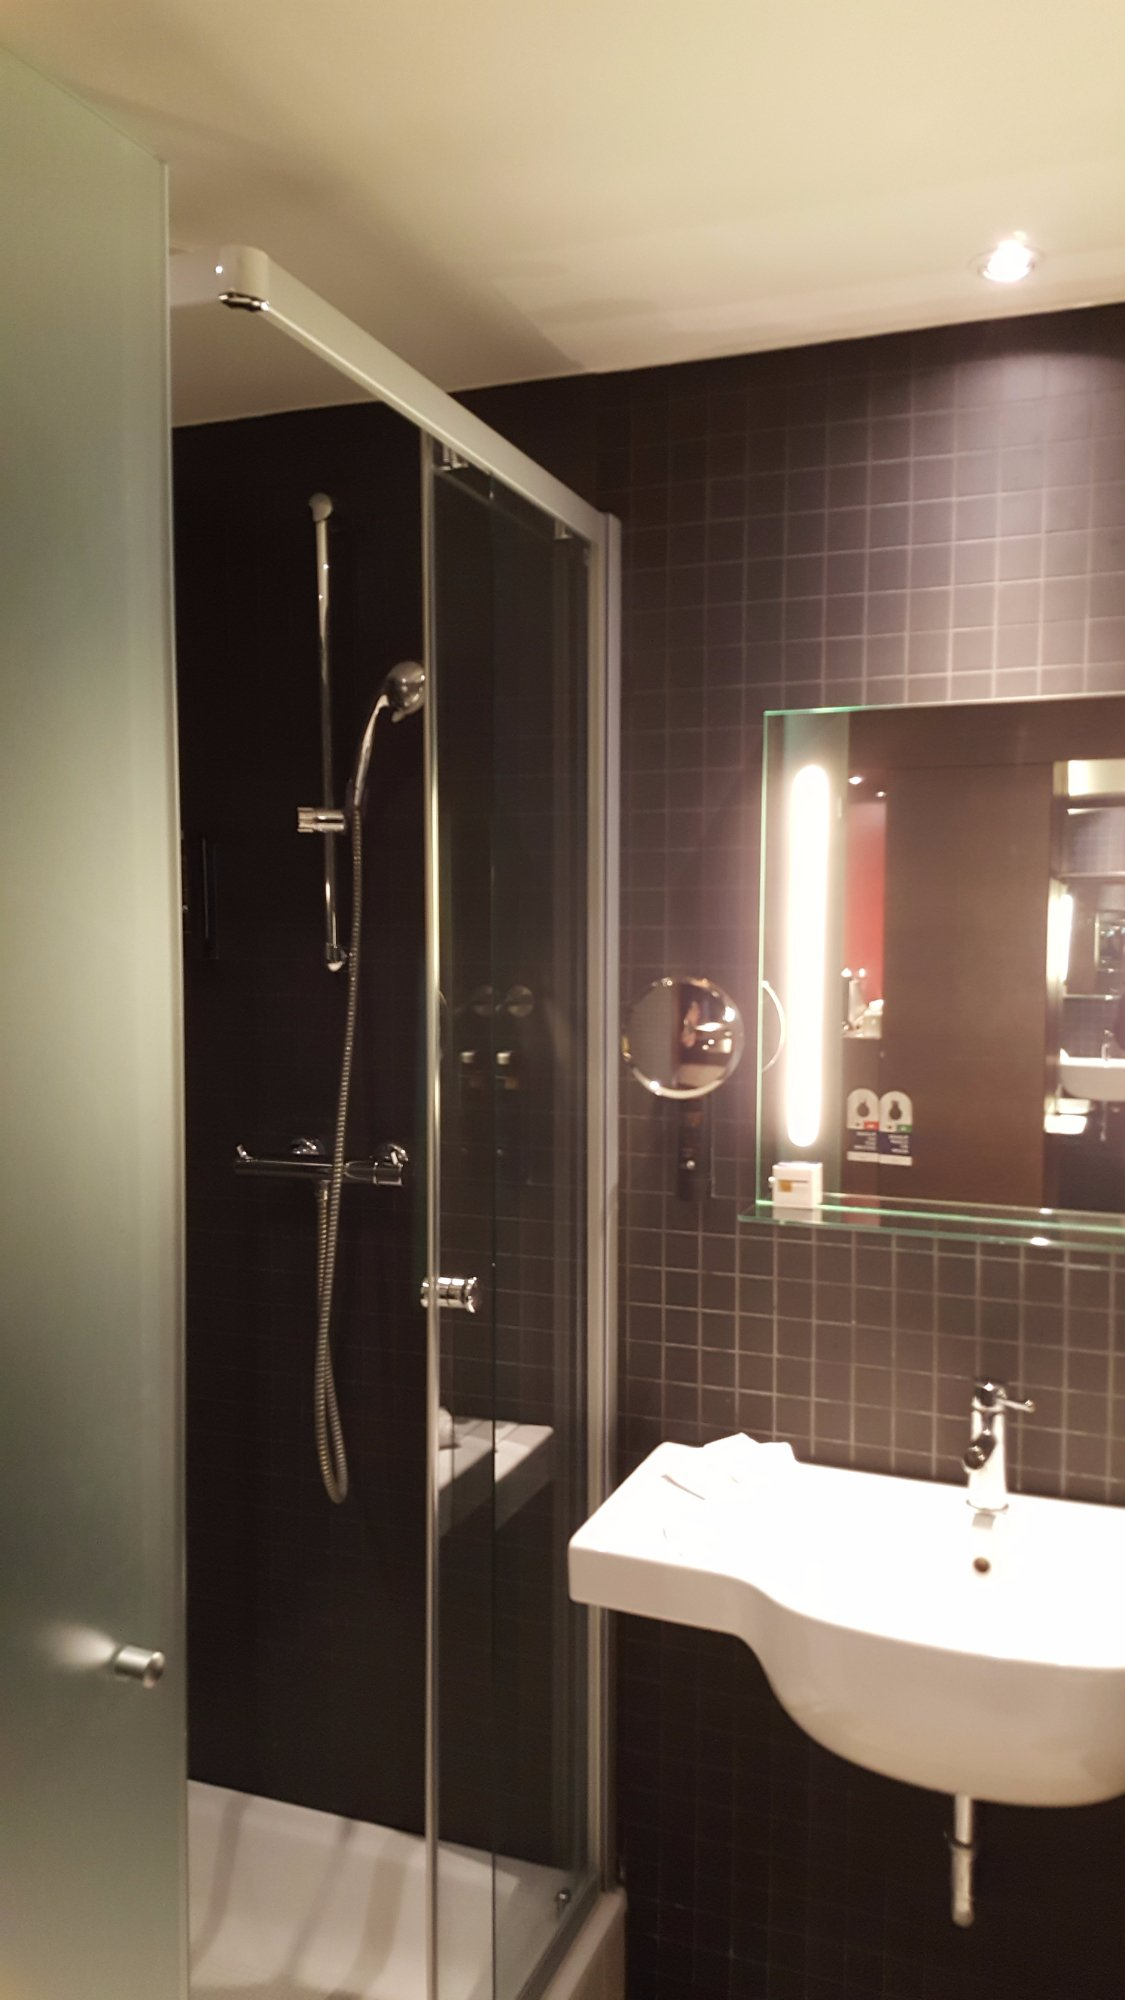 Dutch Design Hotel Artemis  Amsterdam  The Netherlands    Reviews  Photos    Price Comparison   TripAdvisorDutch Design Hotel Artemis  Amsterdam  The Netherlands    Reviews  . Red Light In Bathroom Hotel. Home Design Ideas